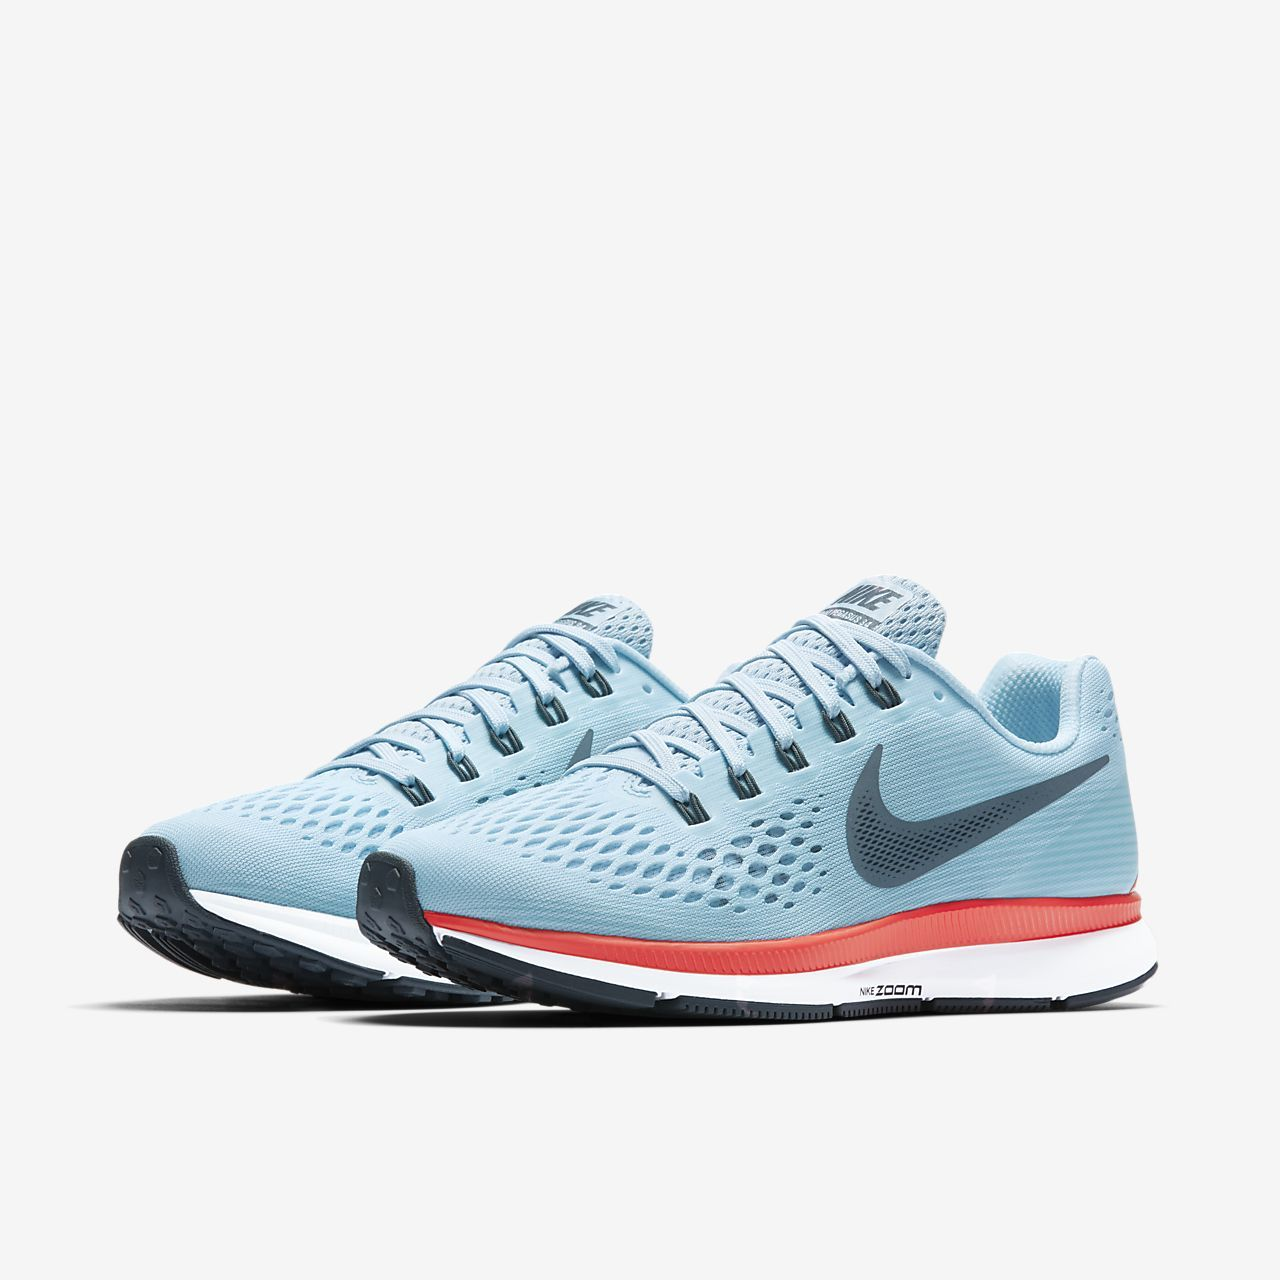 c9eafefba325 Nike Air Zoom Pegasus 34 Women s Running Shoe-Ice Blue Bright Crimson White Blue  Fox Style  880560-404